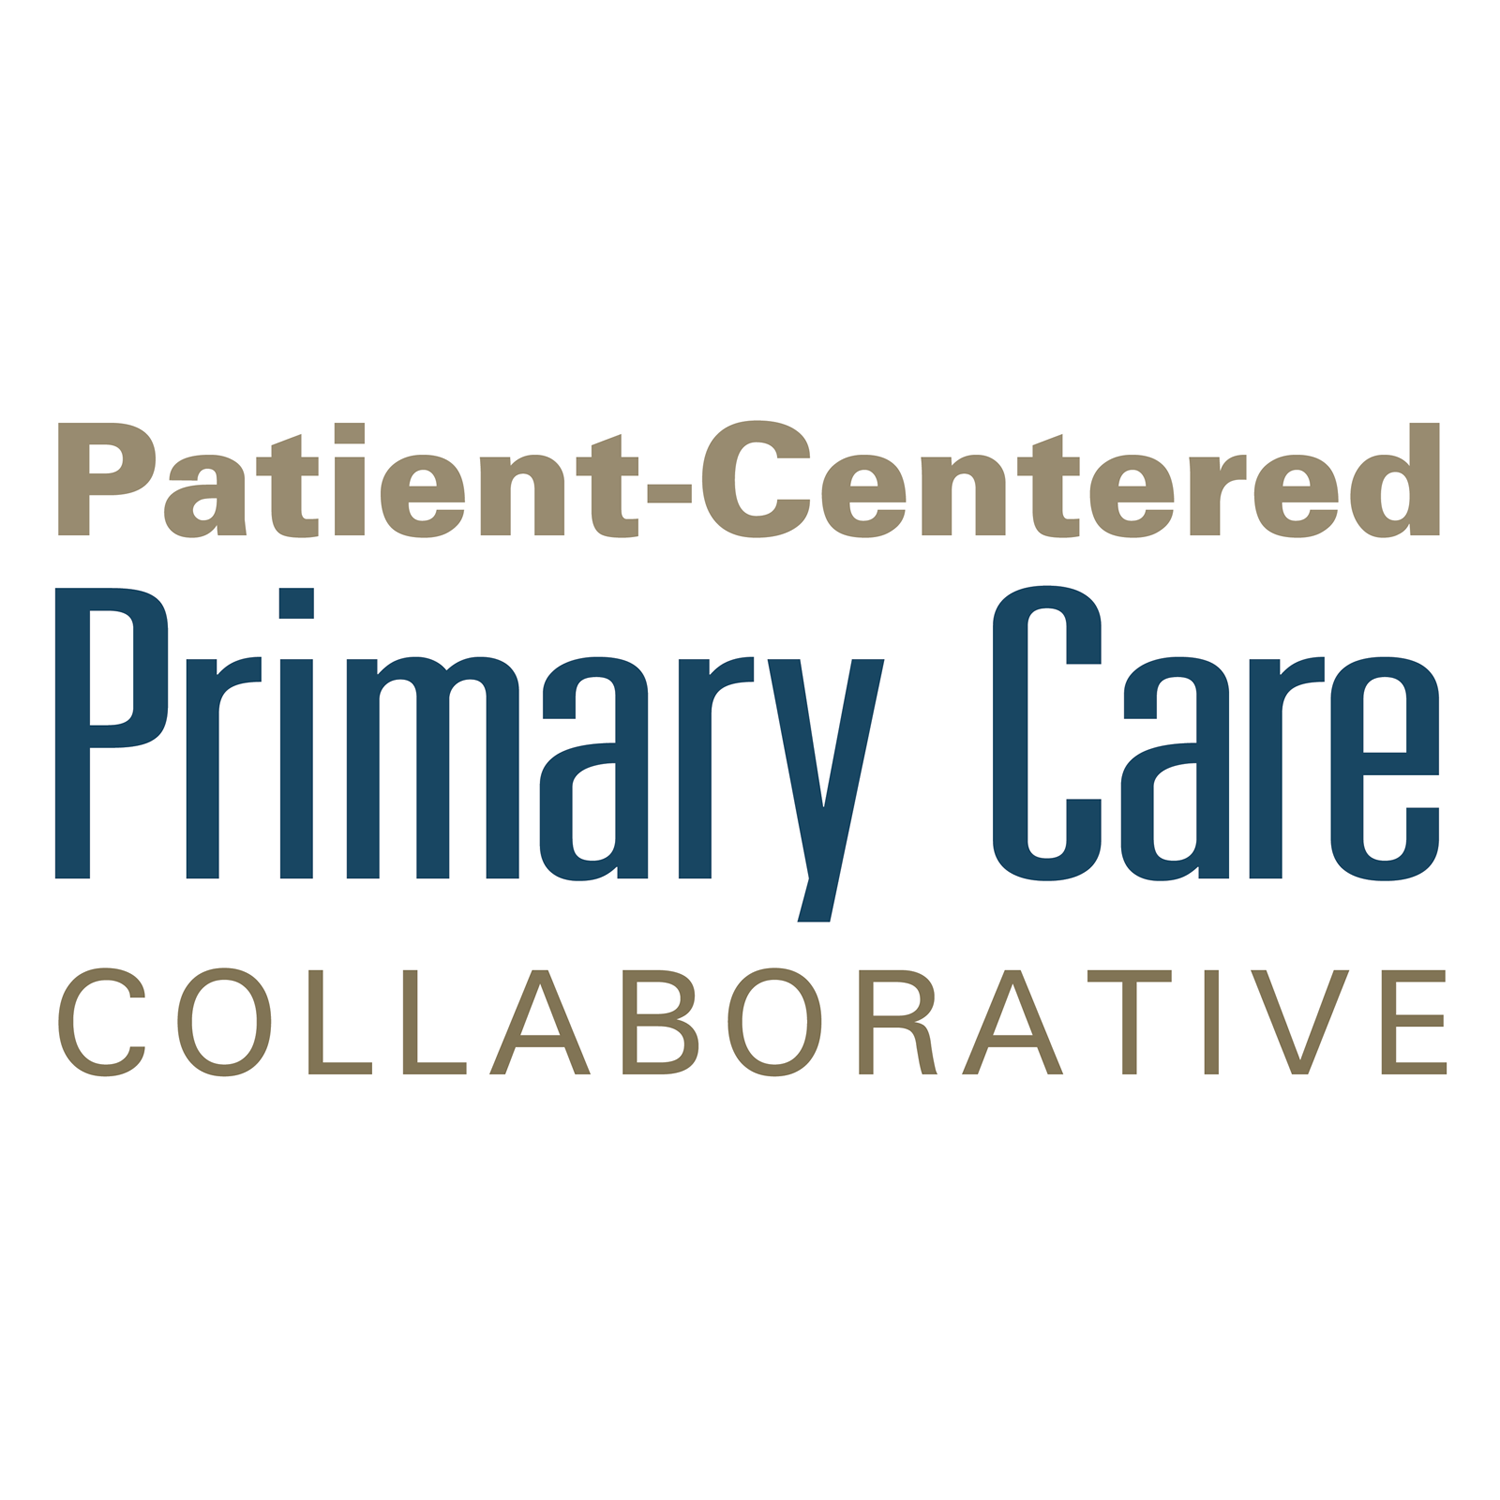 Patient-Centered Primary Care Collaborative Monthly National Briefing